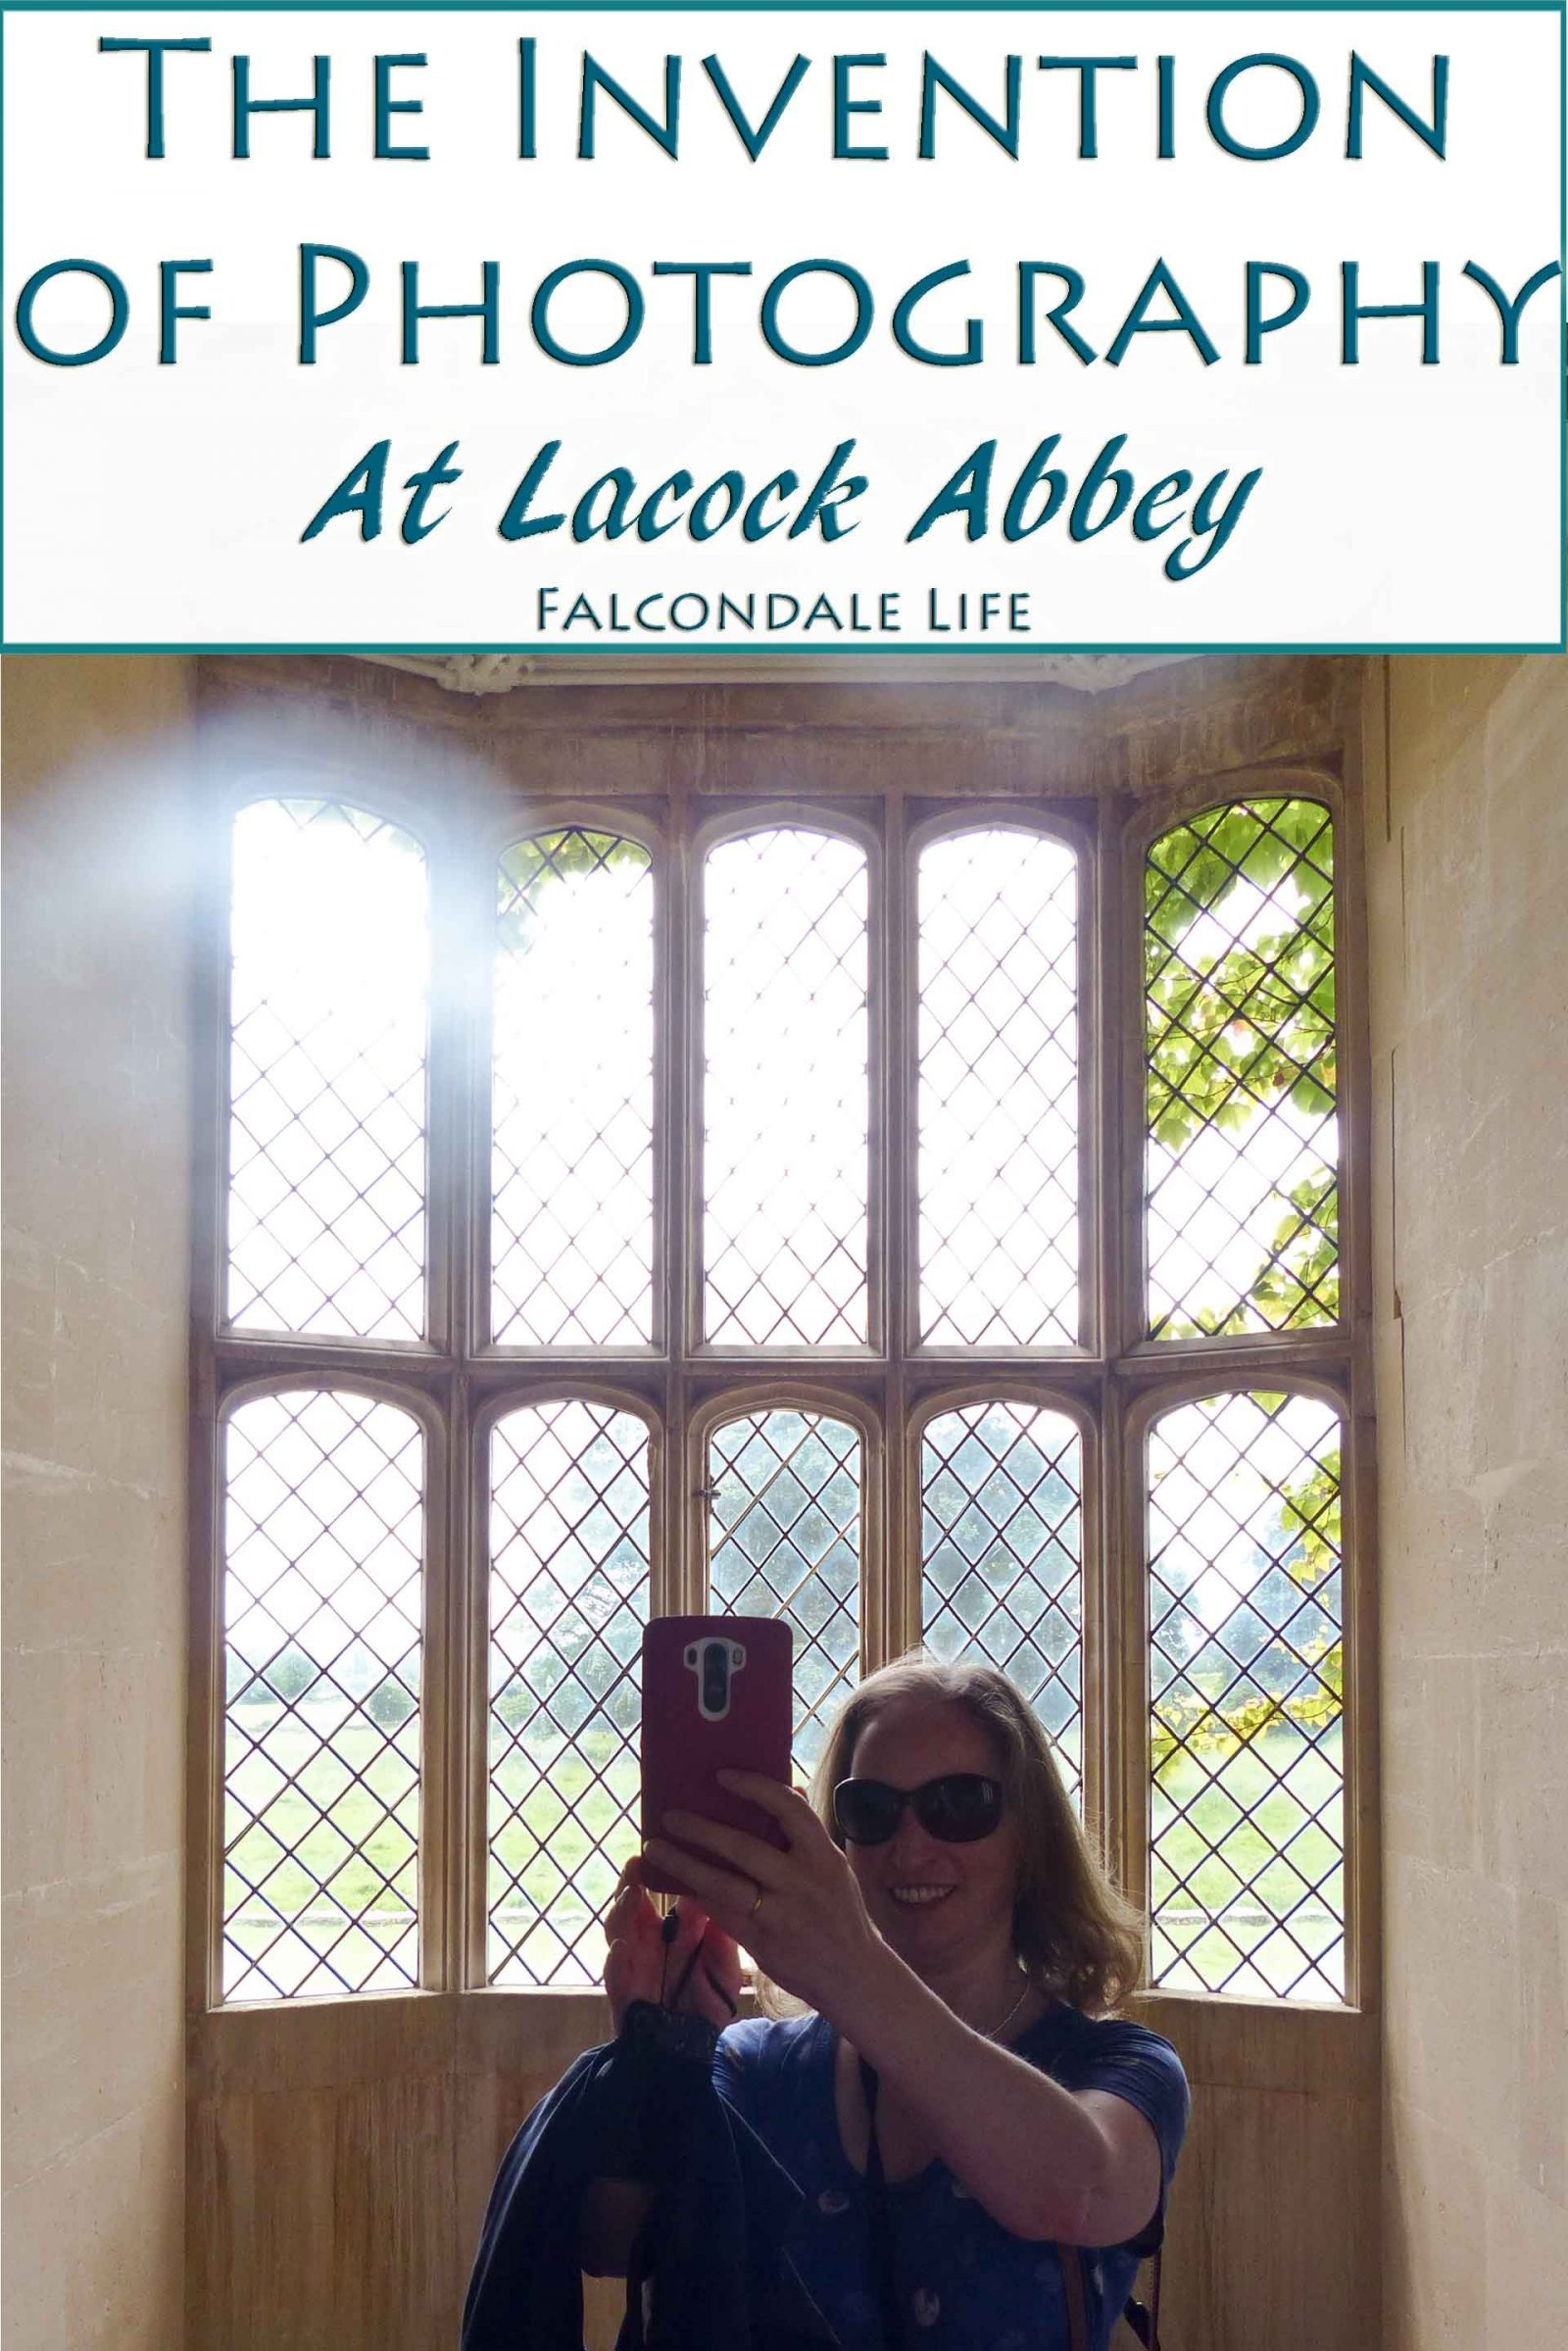 The Invention of Photography at Lacock Abbey on Falcondale Life blog. This oriel window was the subject of the first ever photograph taken in the early 19th century by Henry Fox Talbot. Nowadays thousands of selfies are taken every minute. You can visit Lacock Abbey and take your own selfies at the birthplace of photography.